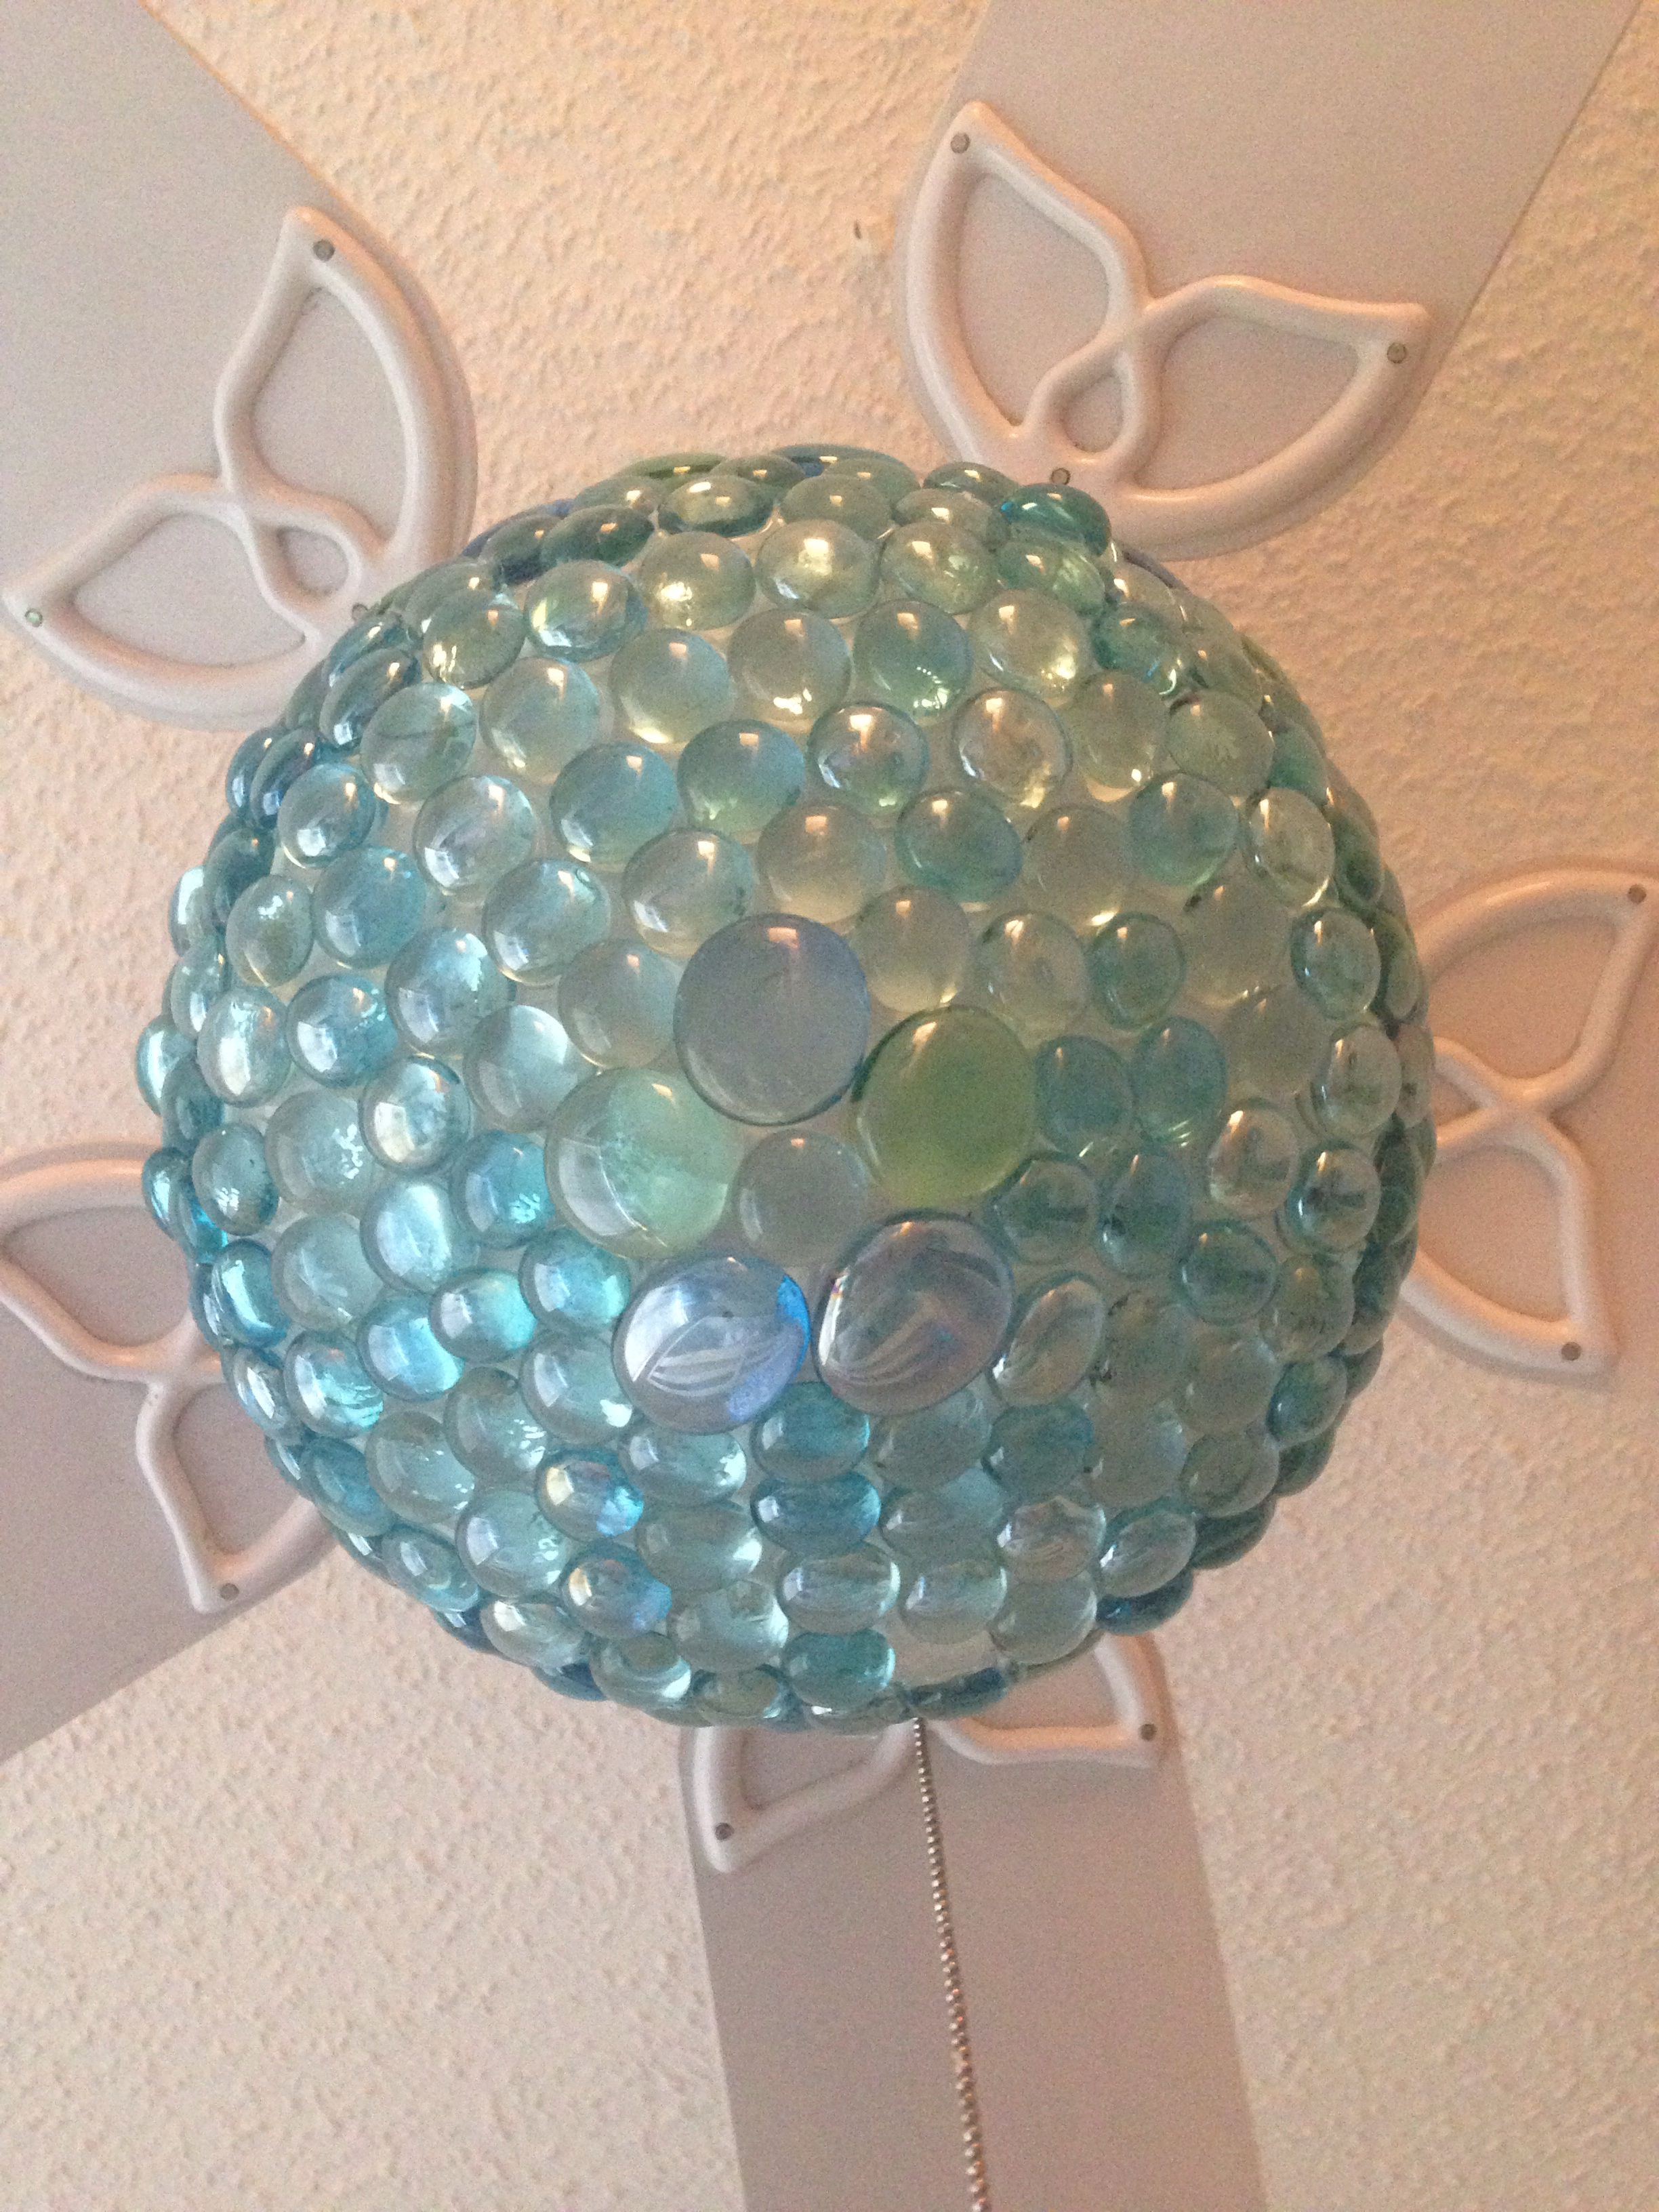 Turquoise   aqua ceiling fan light globe AFTER DIY makeover with     Turquoise   aqua ceiling fan light globe AFTER DIY makeover with aqua glass  pebbles from the Dollar Tree  I did this for my daughter s room